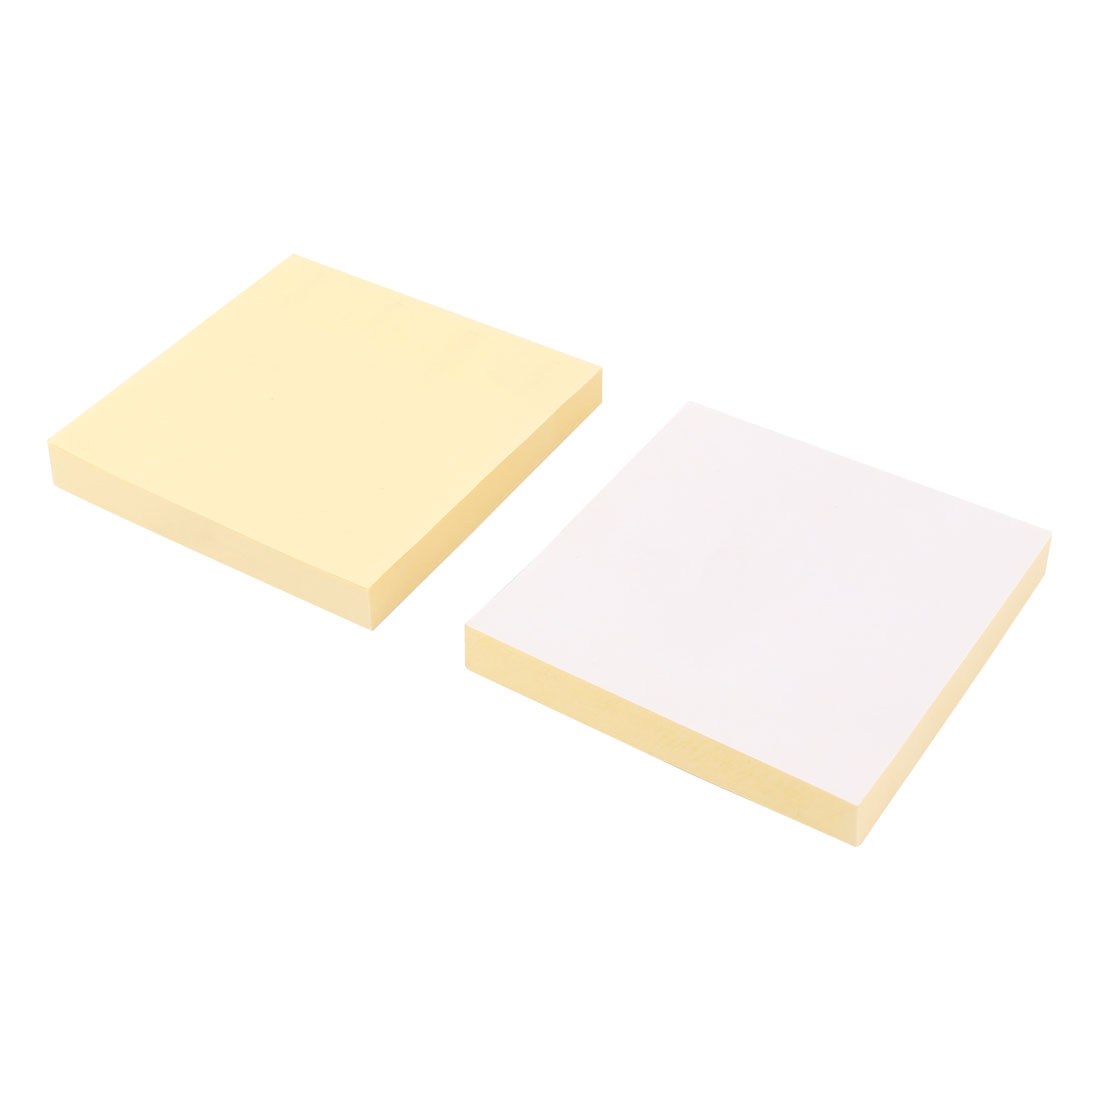 Home Office Self Adhesive 100 Sheets Memo Sticky Note Yellow 76 x 76mm 2 Pack